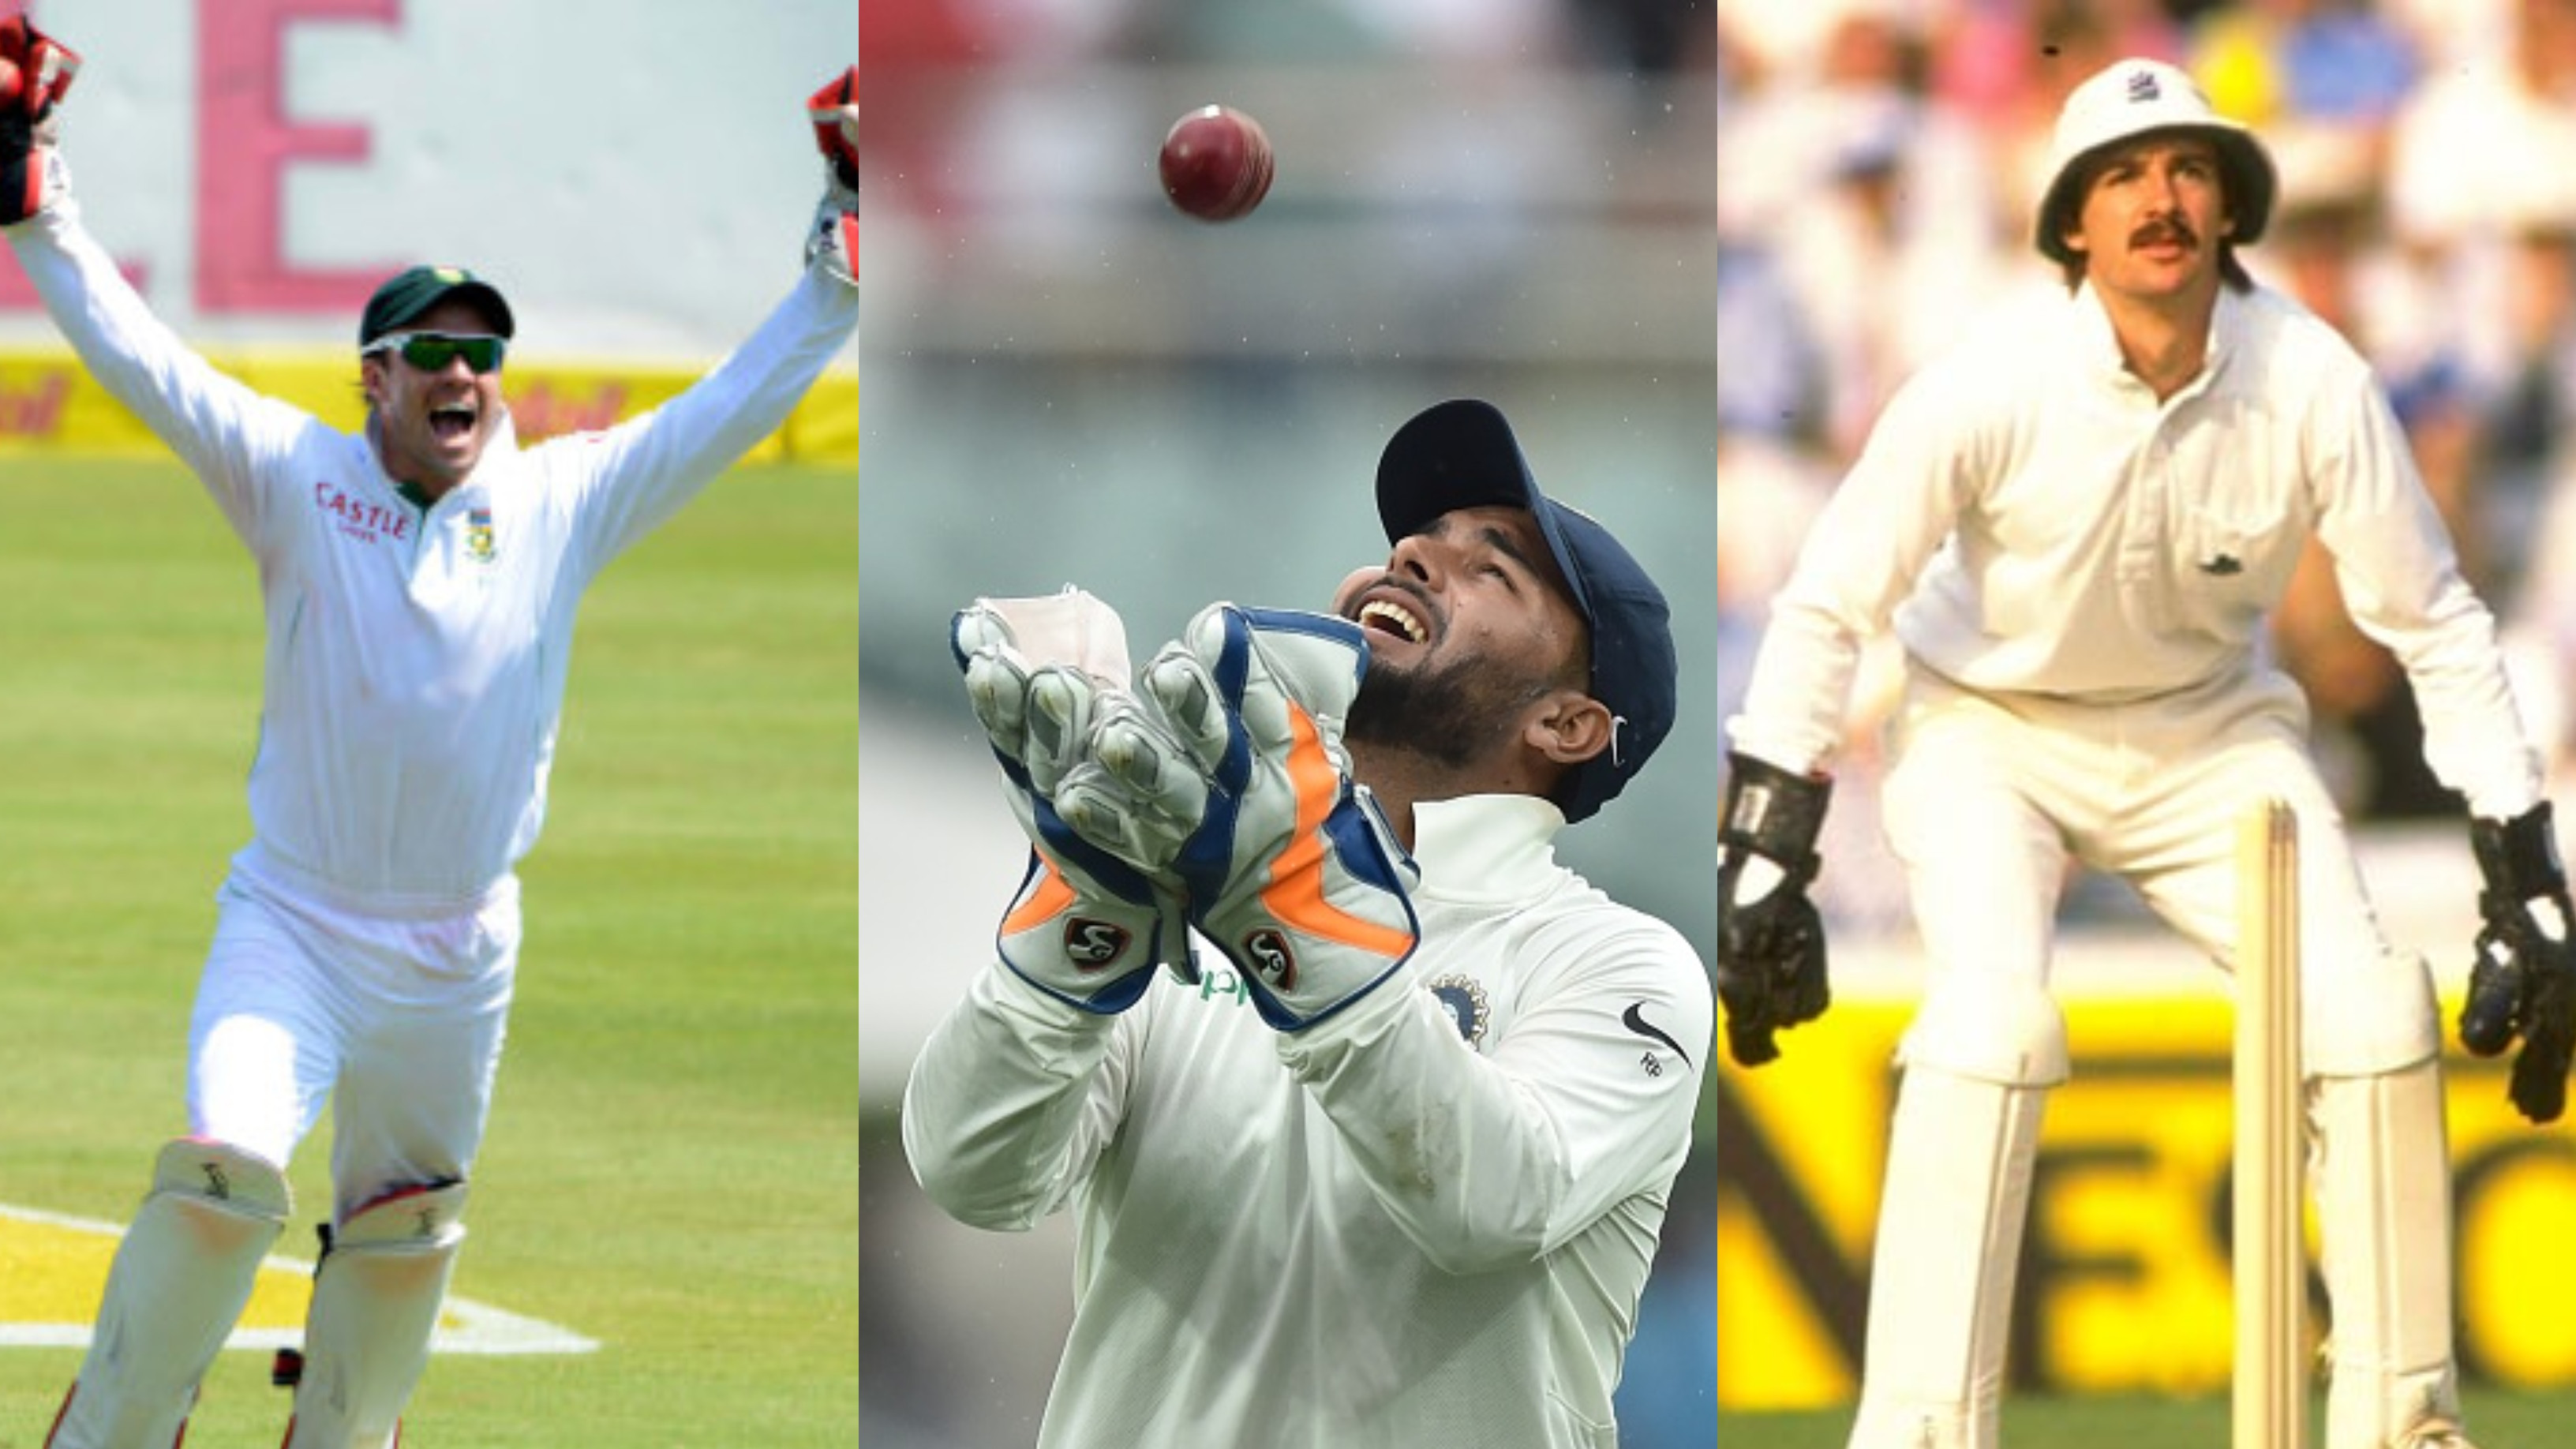 AUS v IND 2018-19: Rishabh Pant delighted to equal most catches world record of  AB de Villiers and Jack Russell